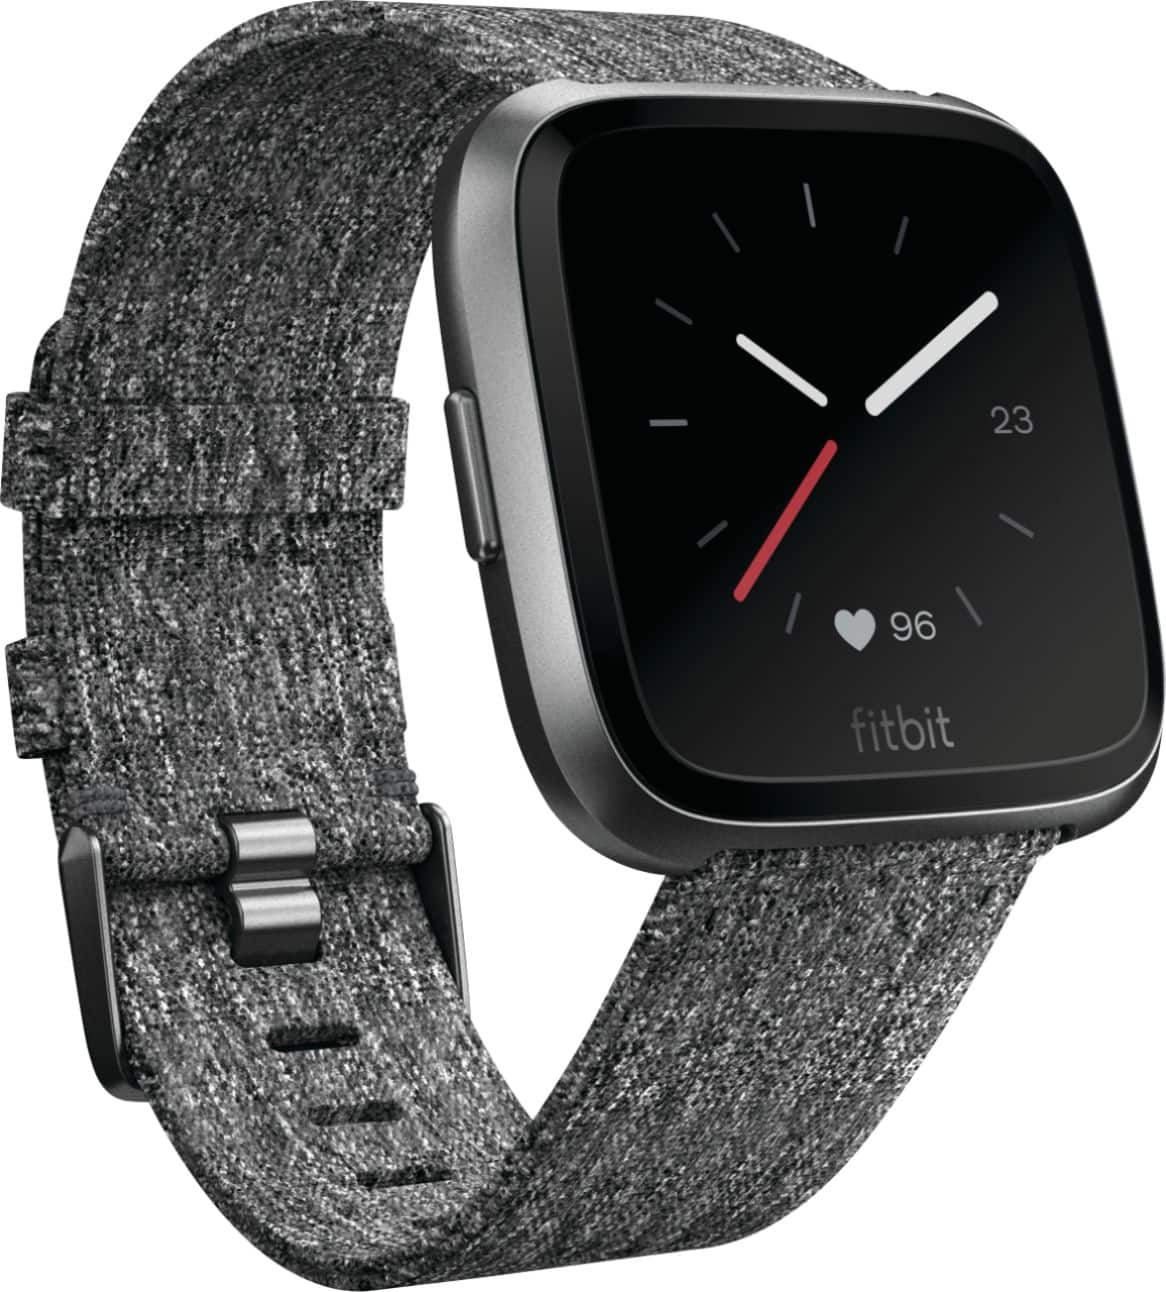 Fitbit Versa Special Edition in Charcoal band for $119 at BestBuy.Com